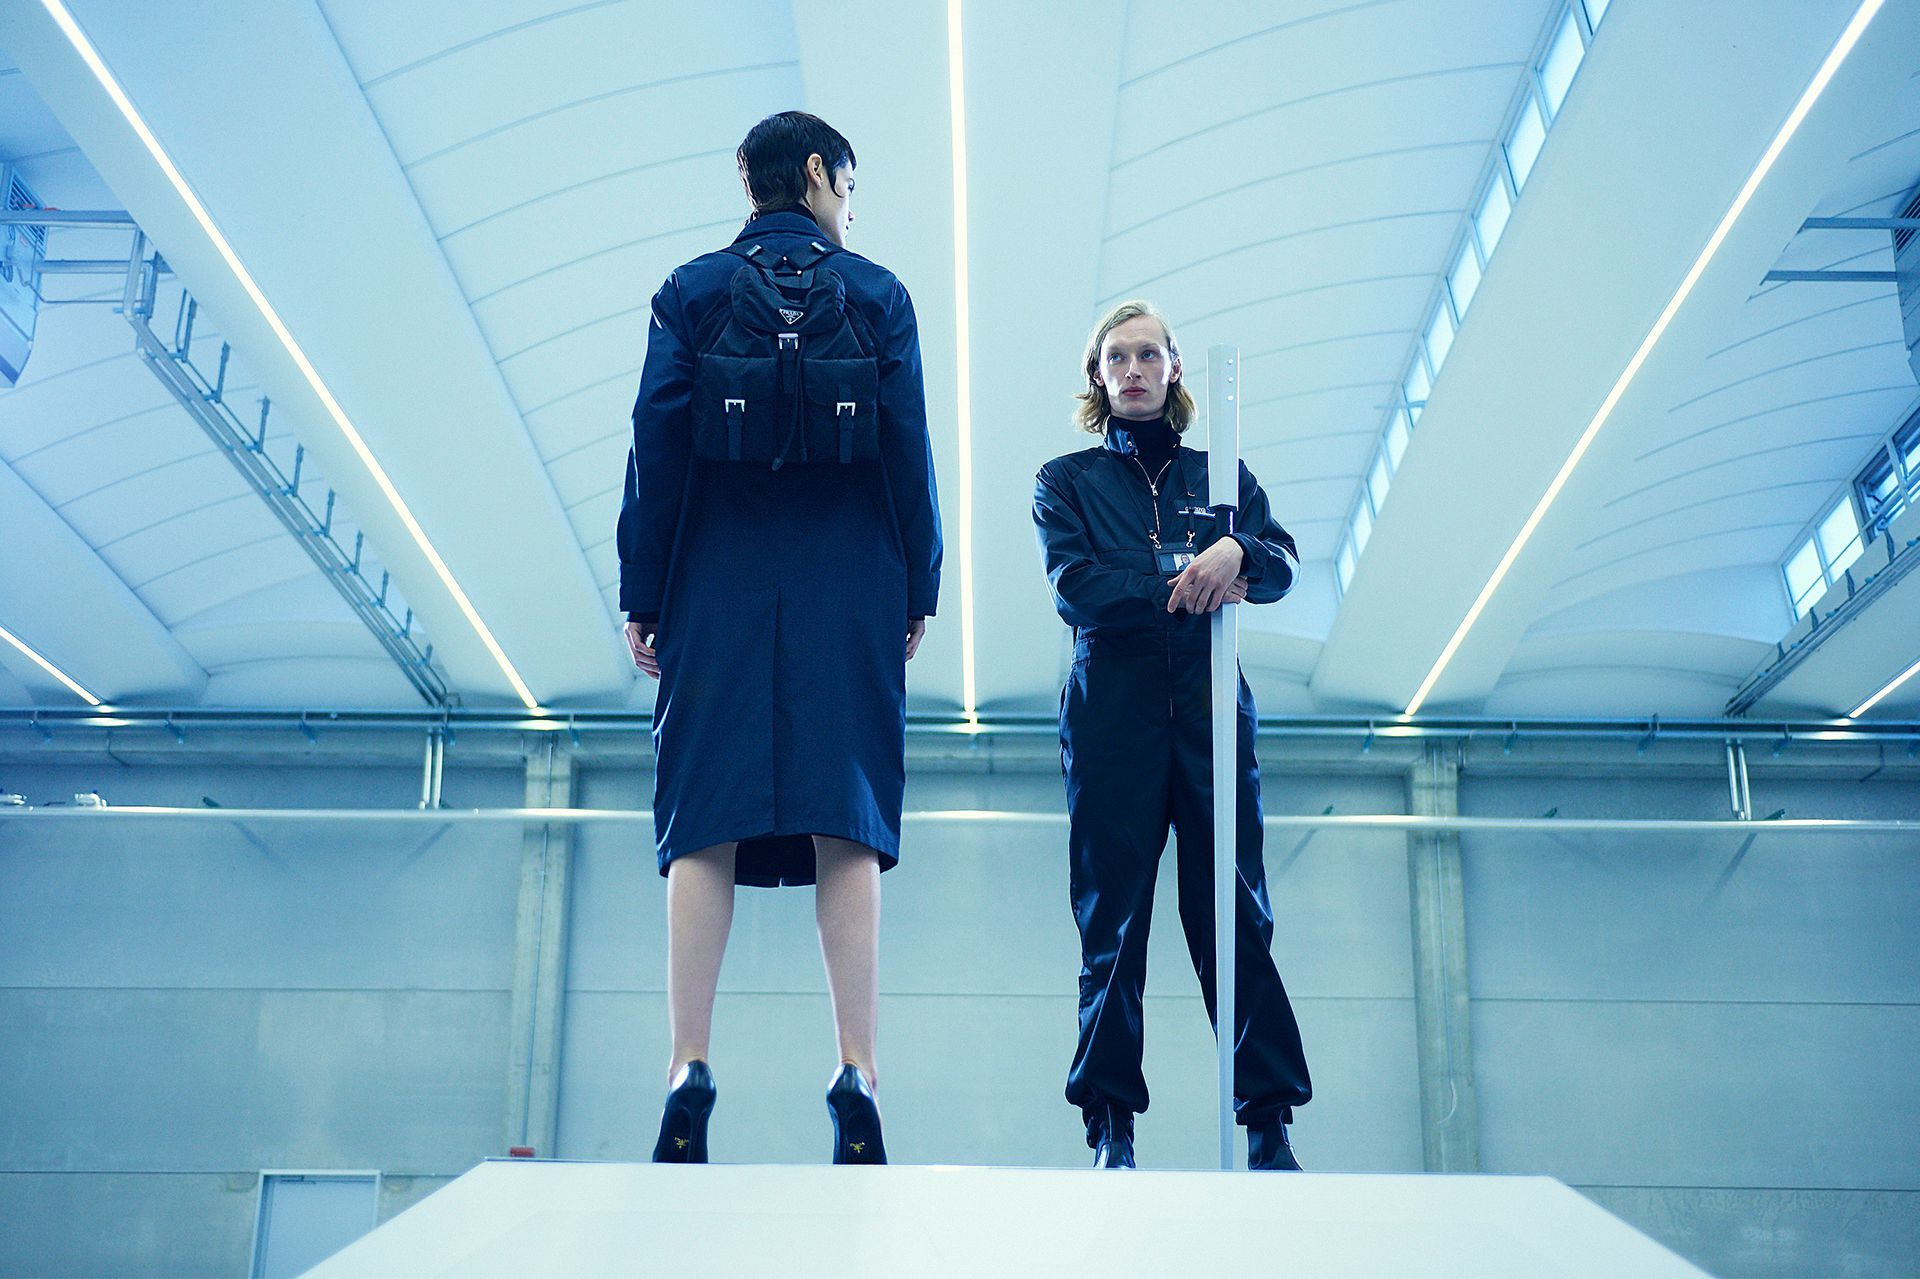 """The house of Prada and its founder Miuccia have always had an affinity for both film and technology, but never have the two merged as poetically as their latest film series """"Nylon Farm."""" The series from agency DlvBBDO, and directed by D I • A L, is designed to celebrate the houses signature fabrication, nylon."""